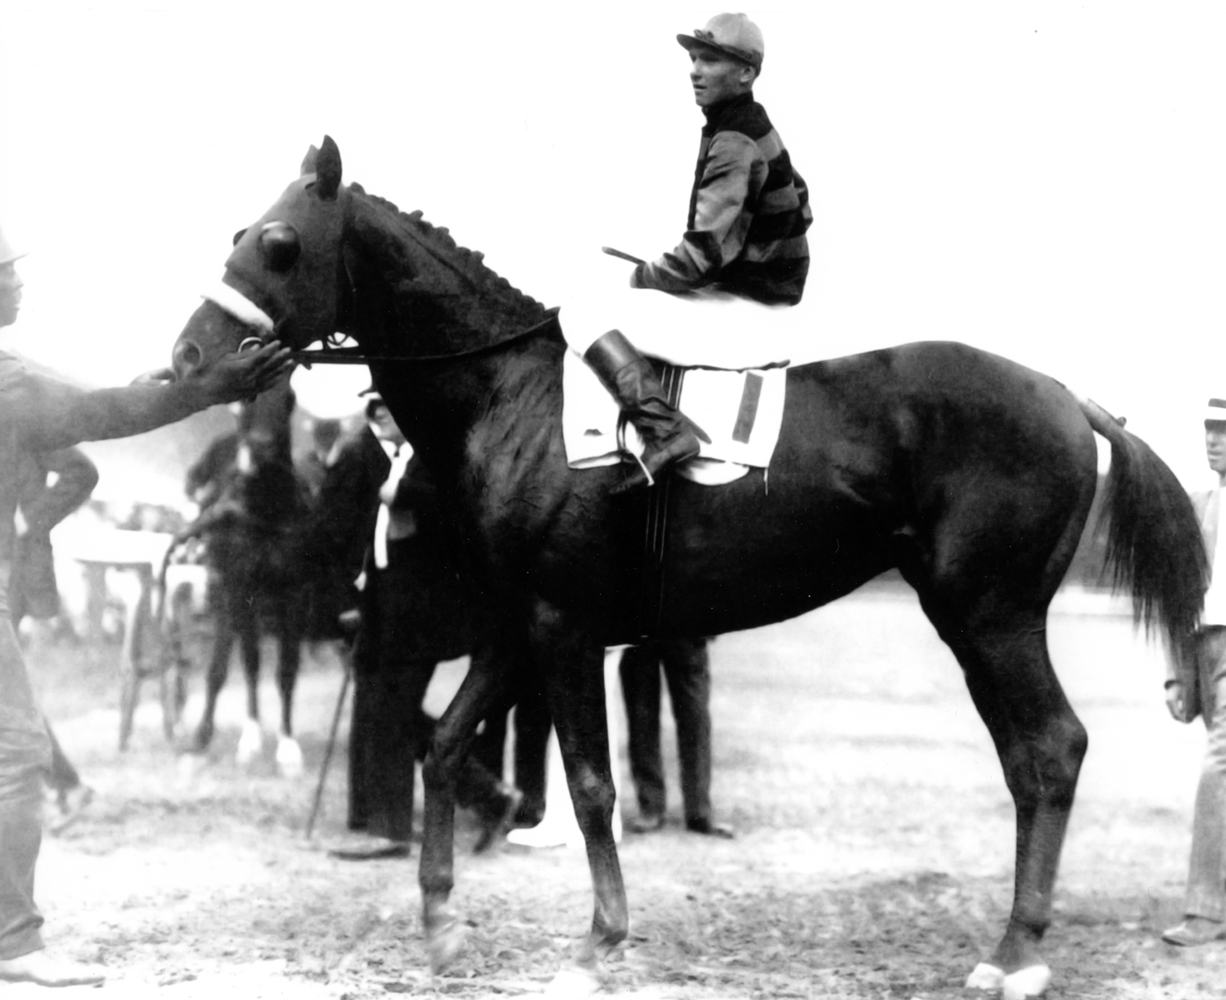 Sir Barton with Earl Sande up (Courtesy of Ken Grayson)